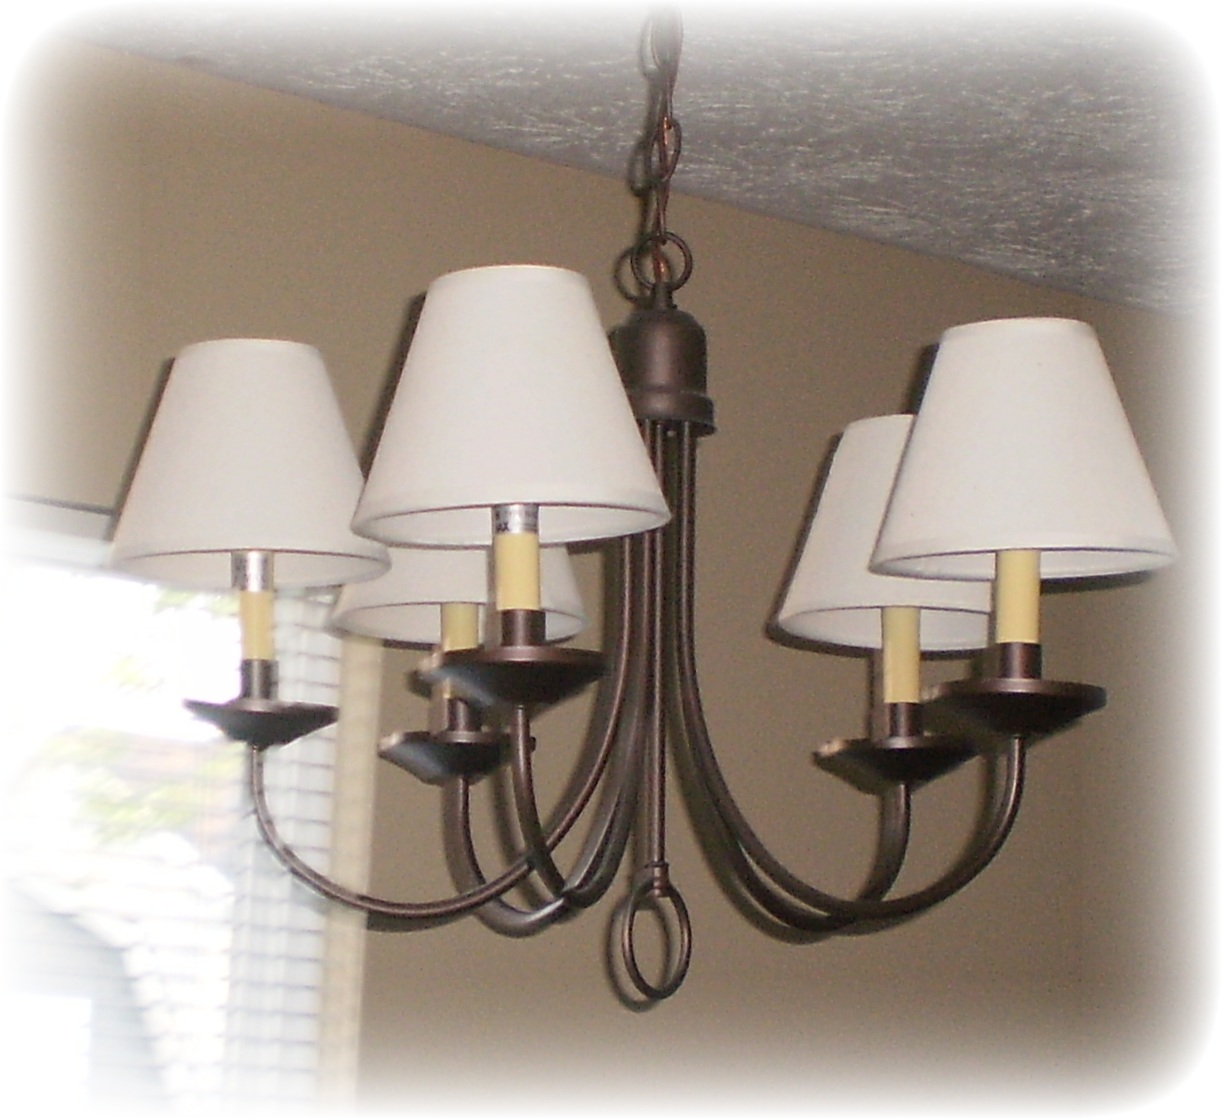 Sconce Lamp Shades On Where Beauty Meets Function No Friday Shade Redo